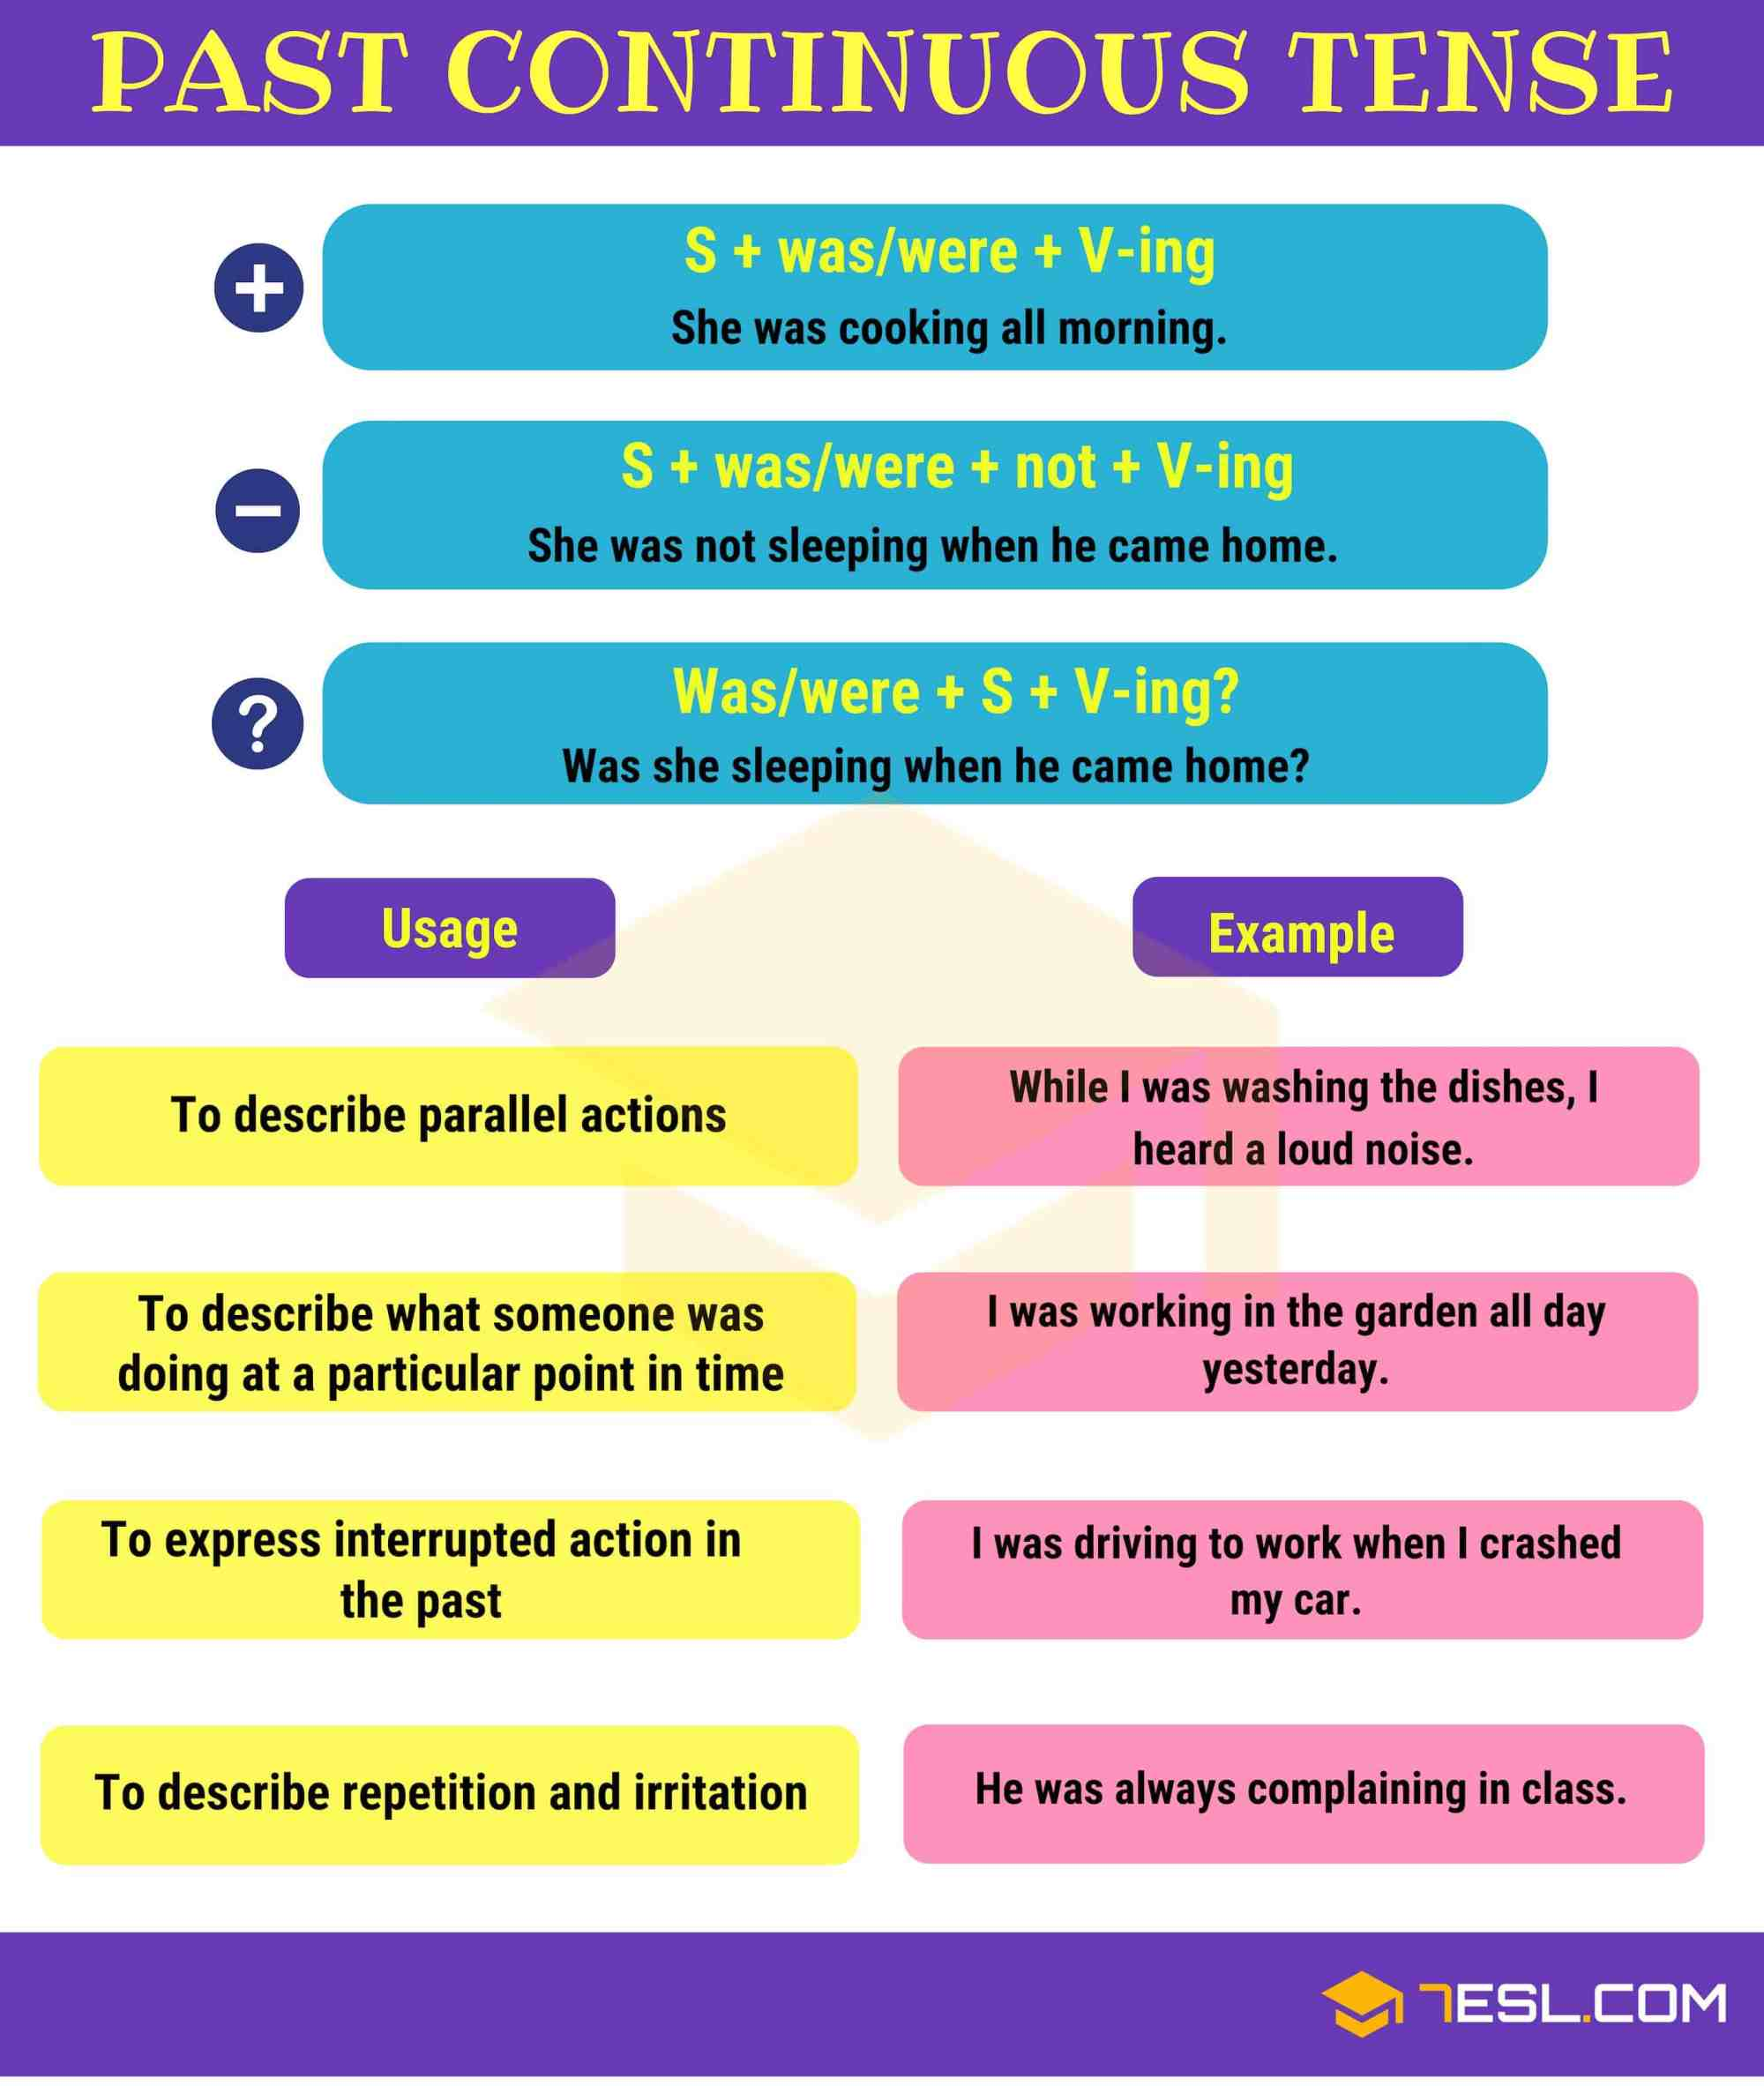 hight resolution of Past Continuous Tense: Definition